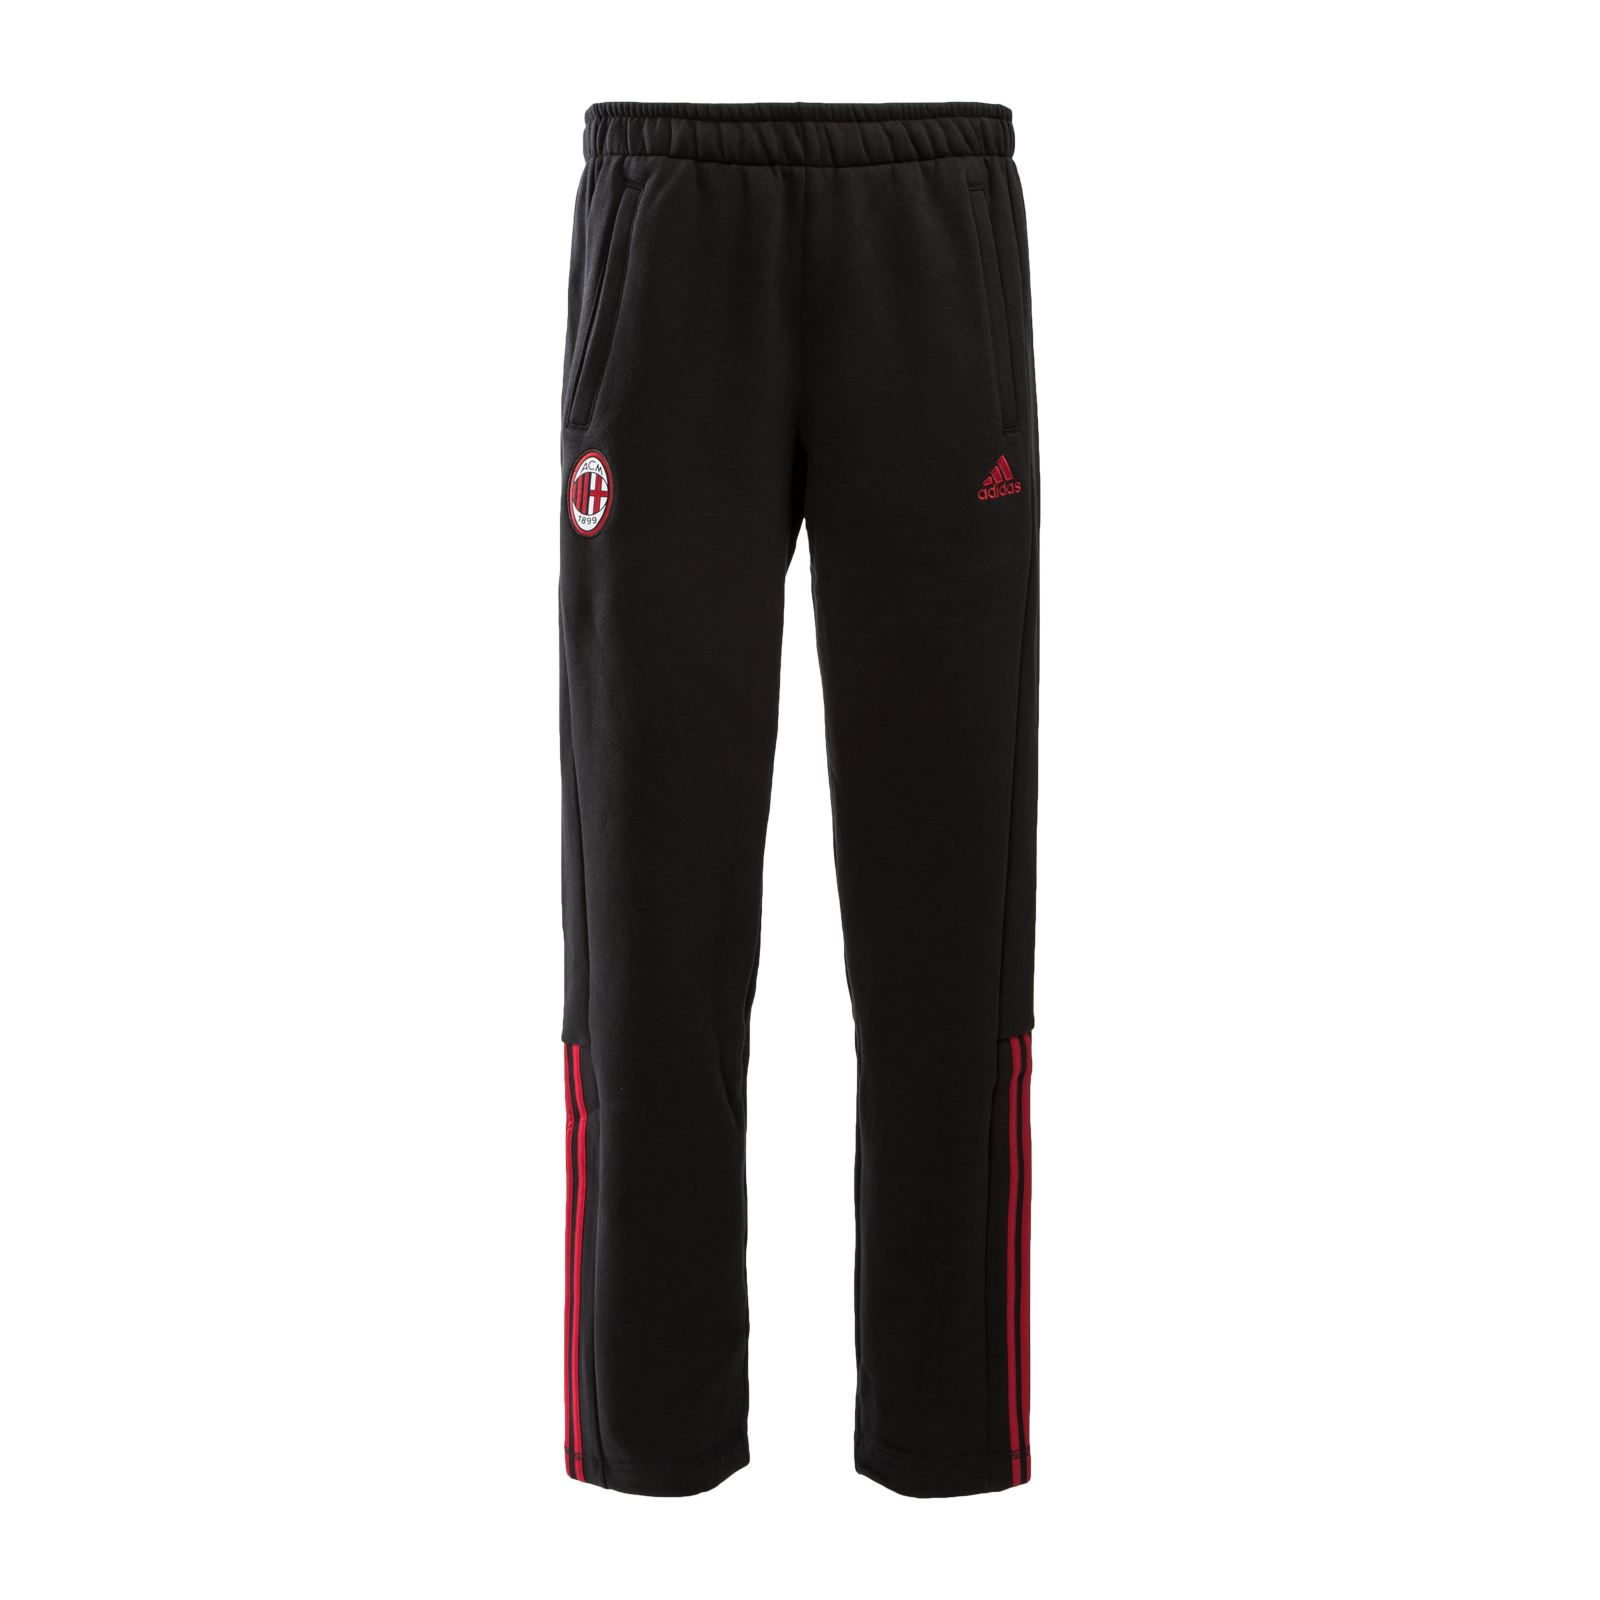 c7bb8a6c21 Details about adidas AC Milan 3 Stripe Sweat Pants Mens Black/Rd Football  Soccer Track Bottoms